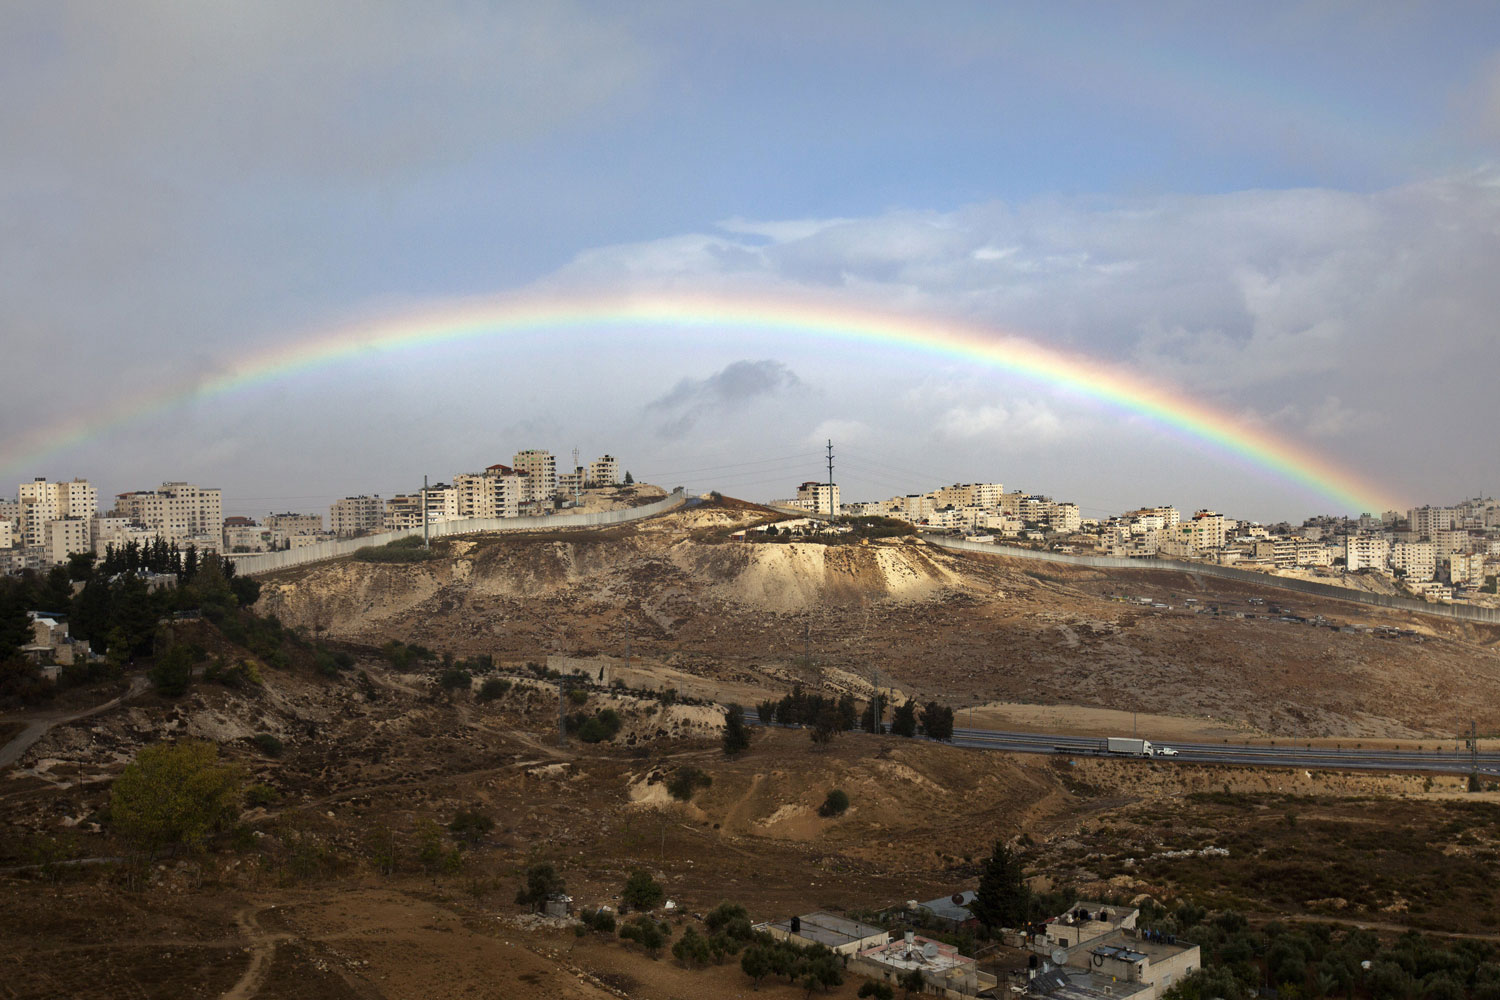 Coexistence, not Sectarianism                               Nov. 11, 2012. A rainbow arcs over the Palestinian Shuafat refugee camp and a section of Israel's controversial separation barrier in Isreali-annexed East Jerusalem.